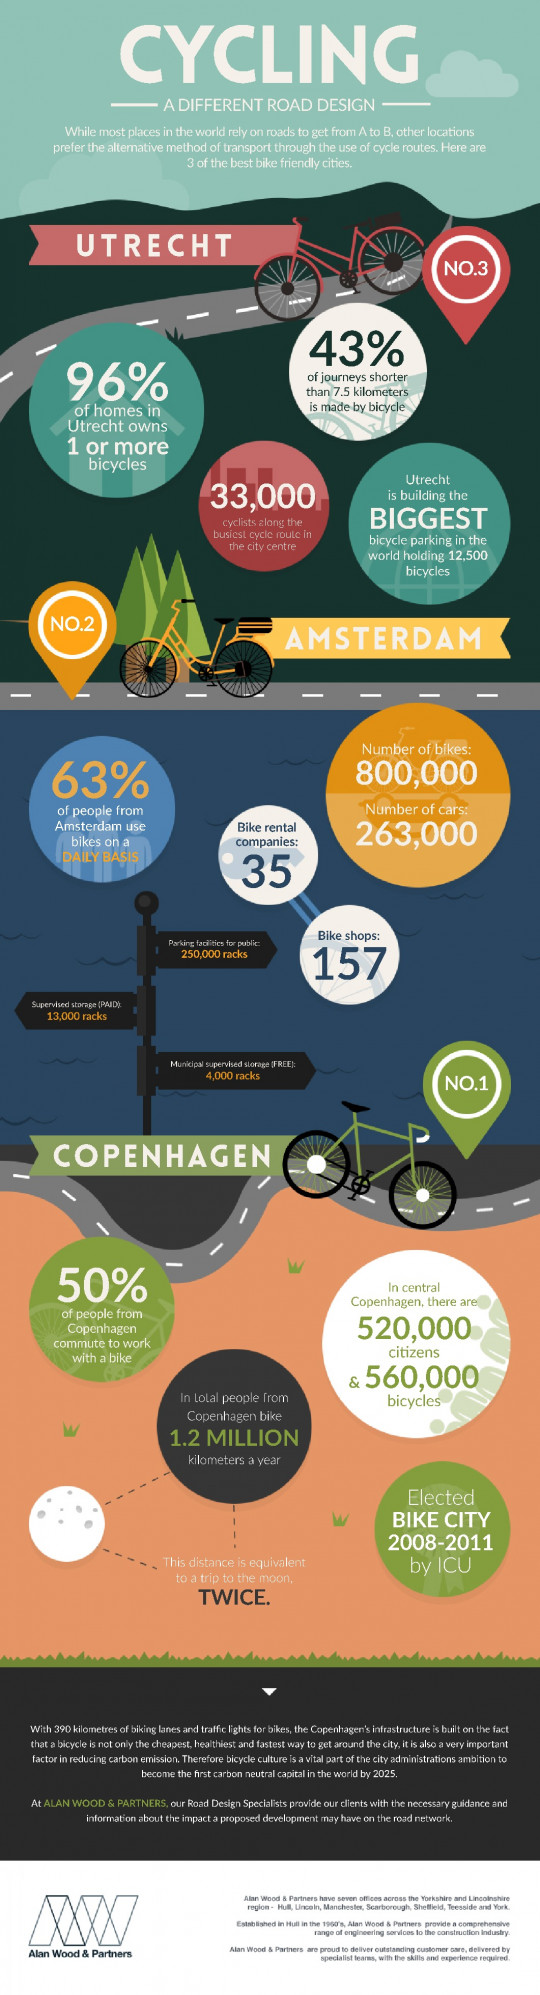 Cycling - A Different Road Design